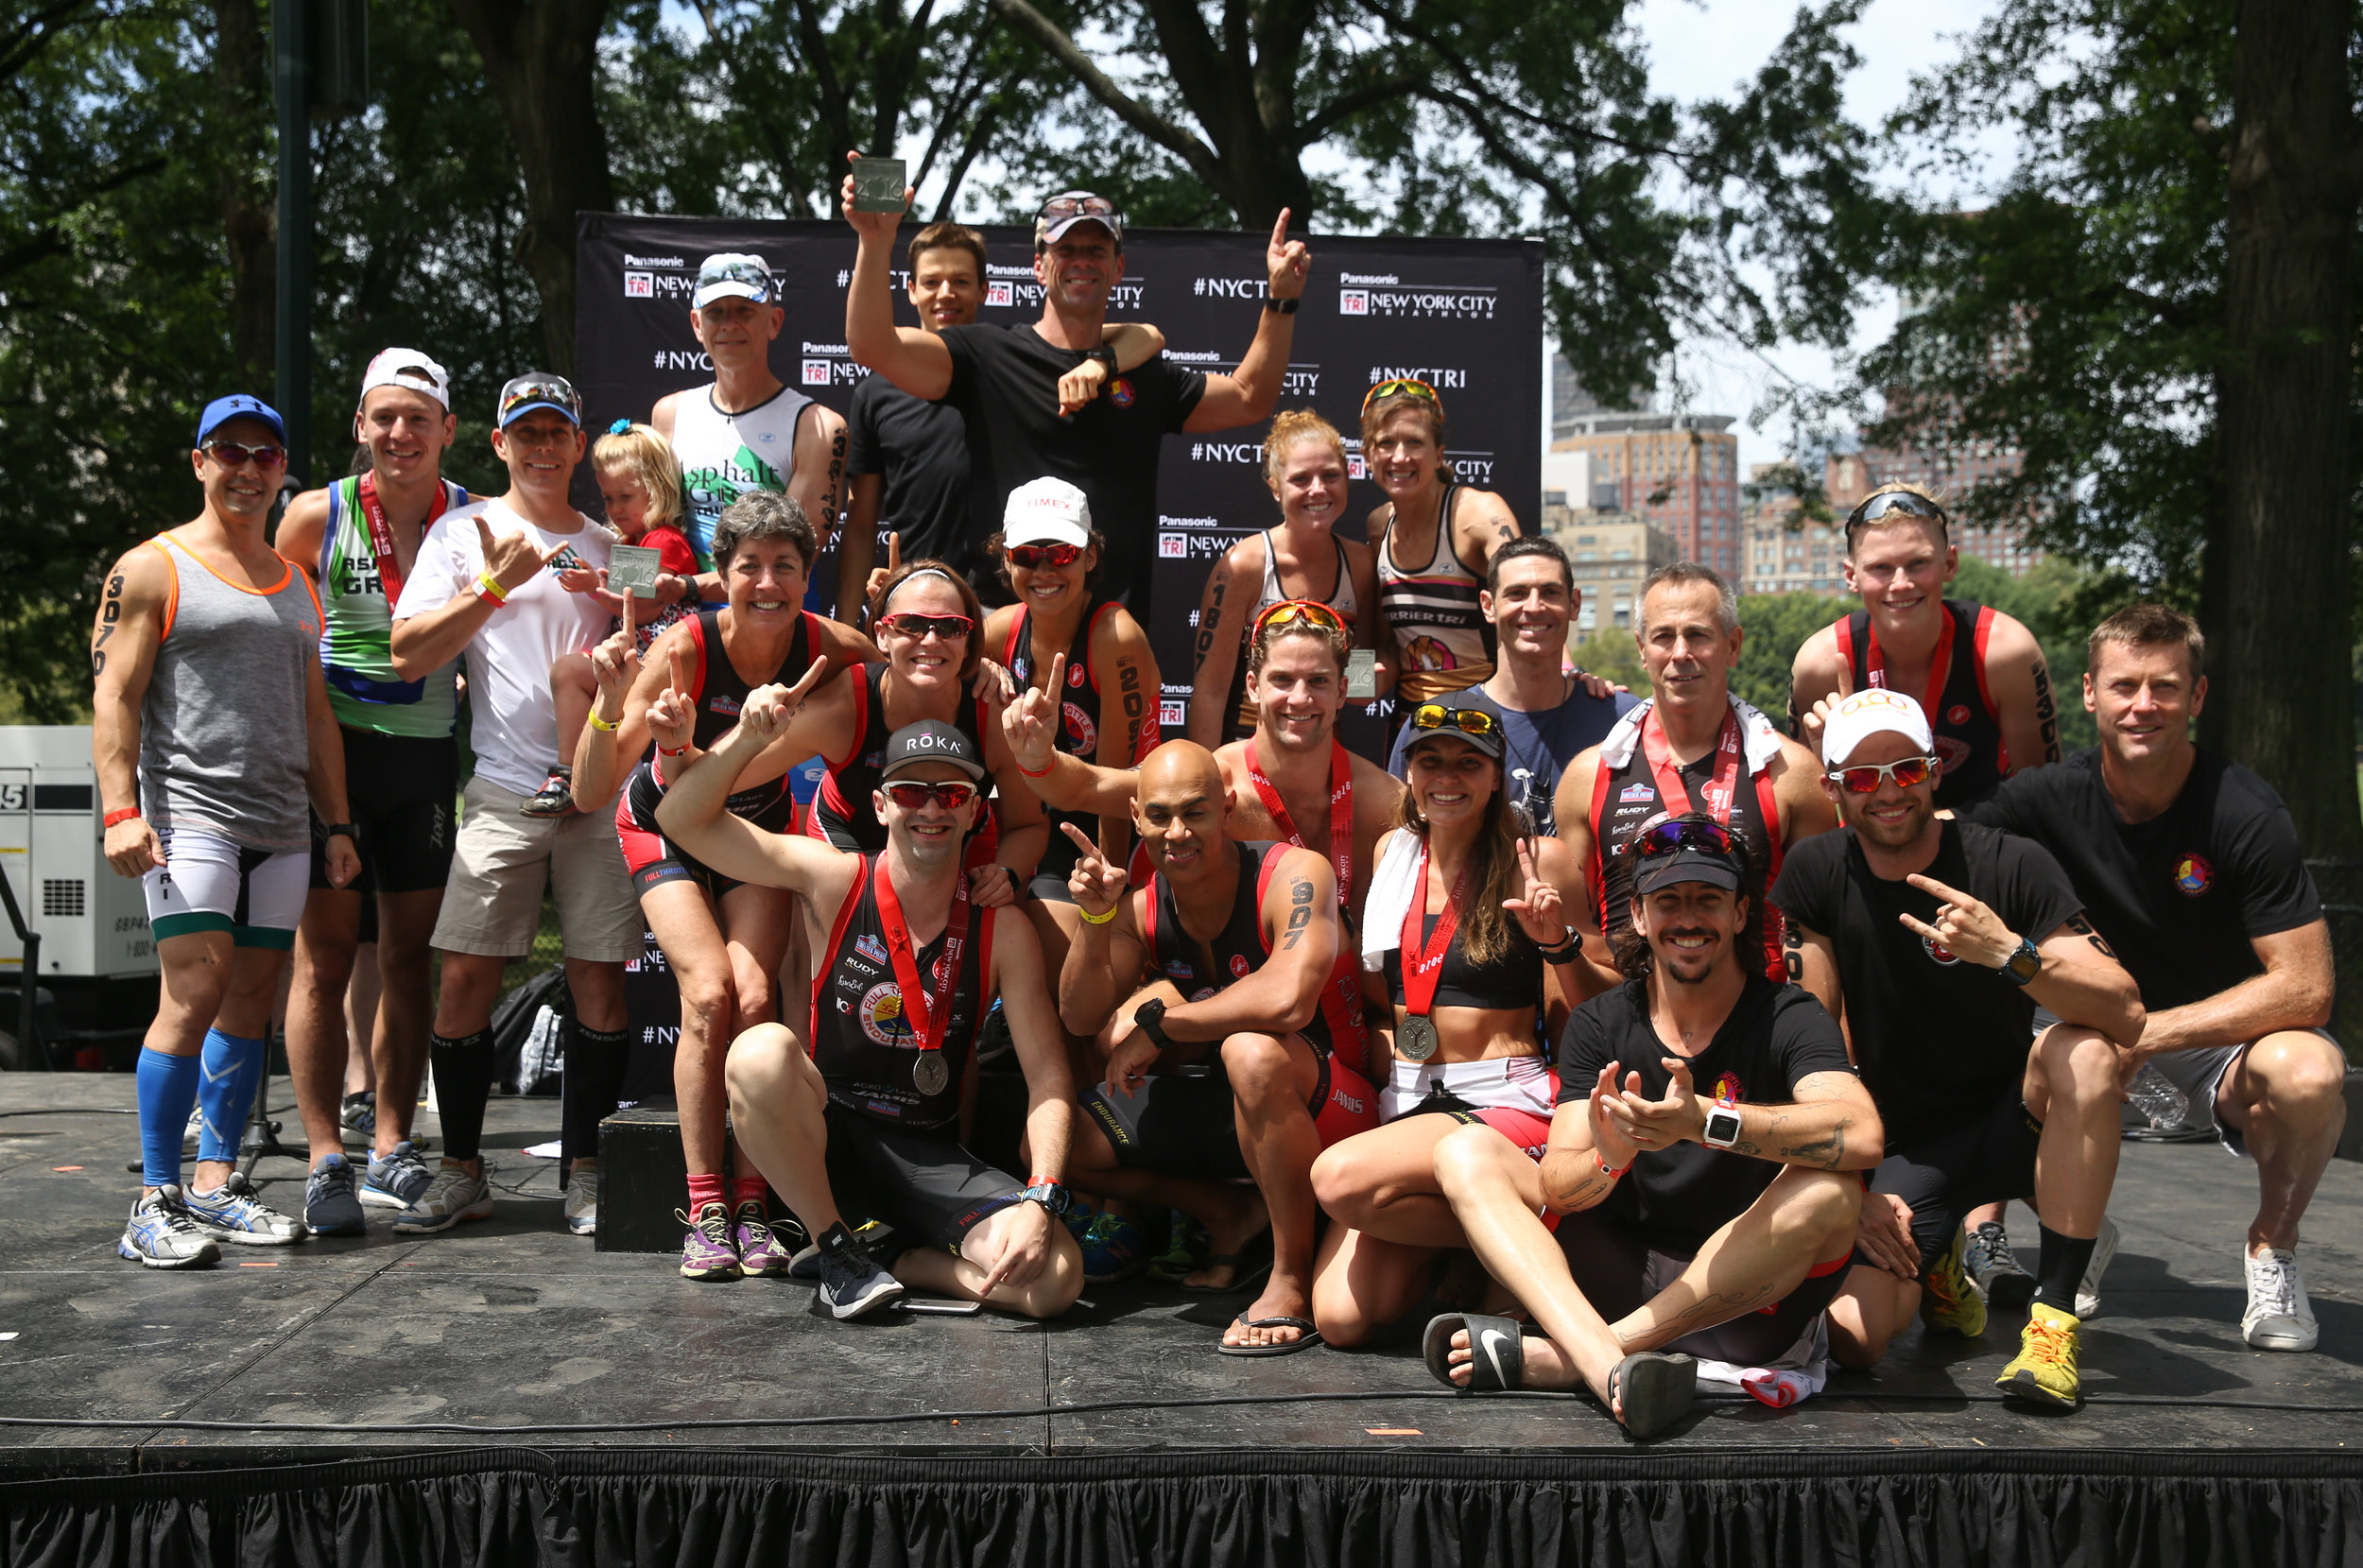 Your 2016 New York City Triathlon Team Champions